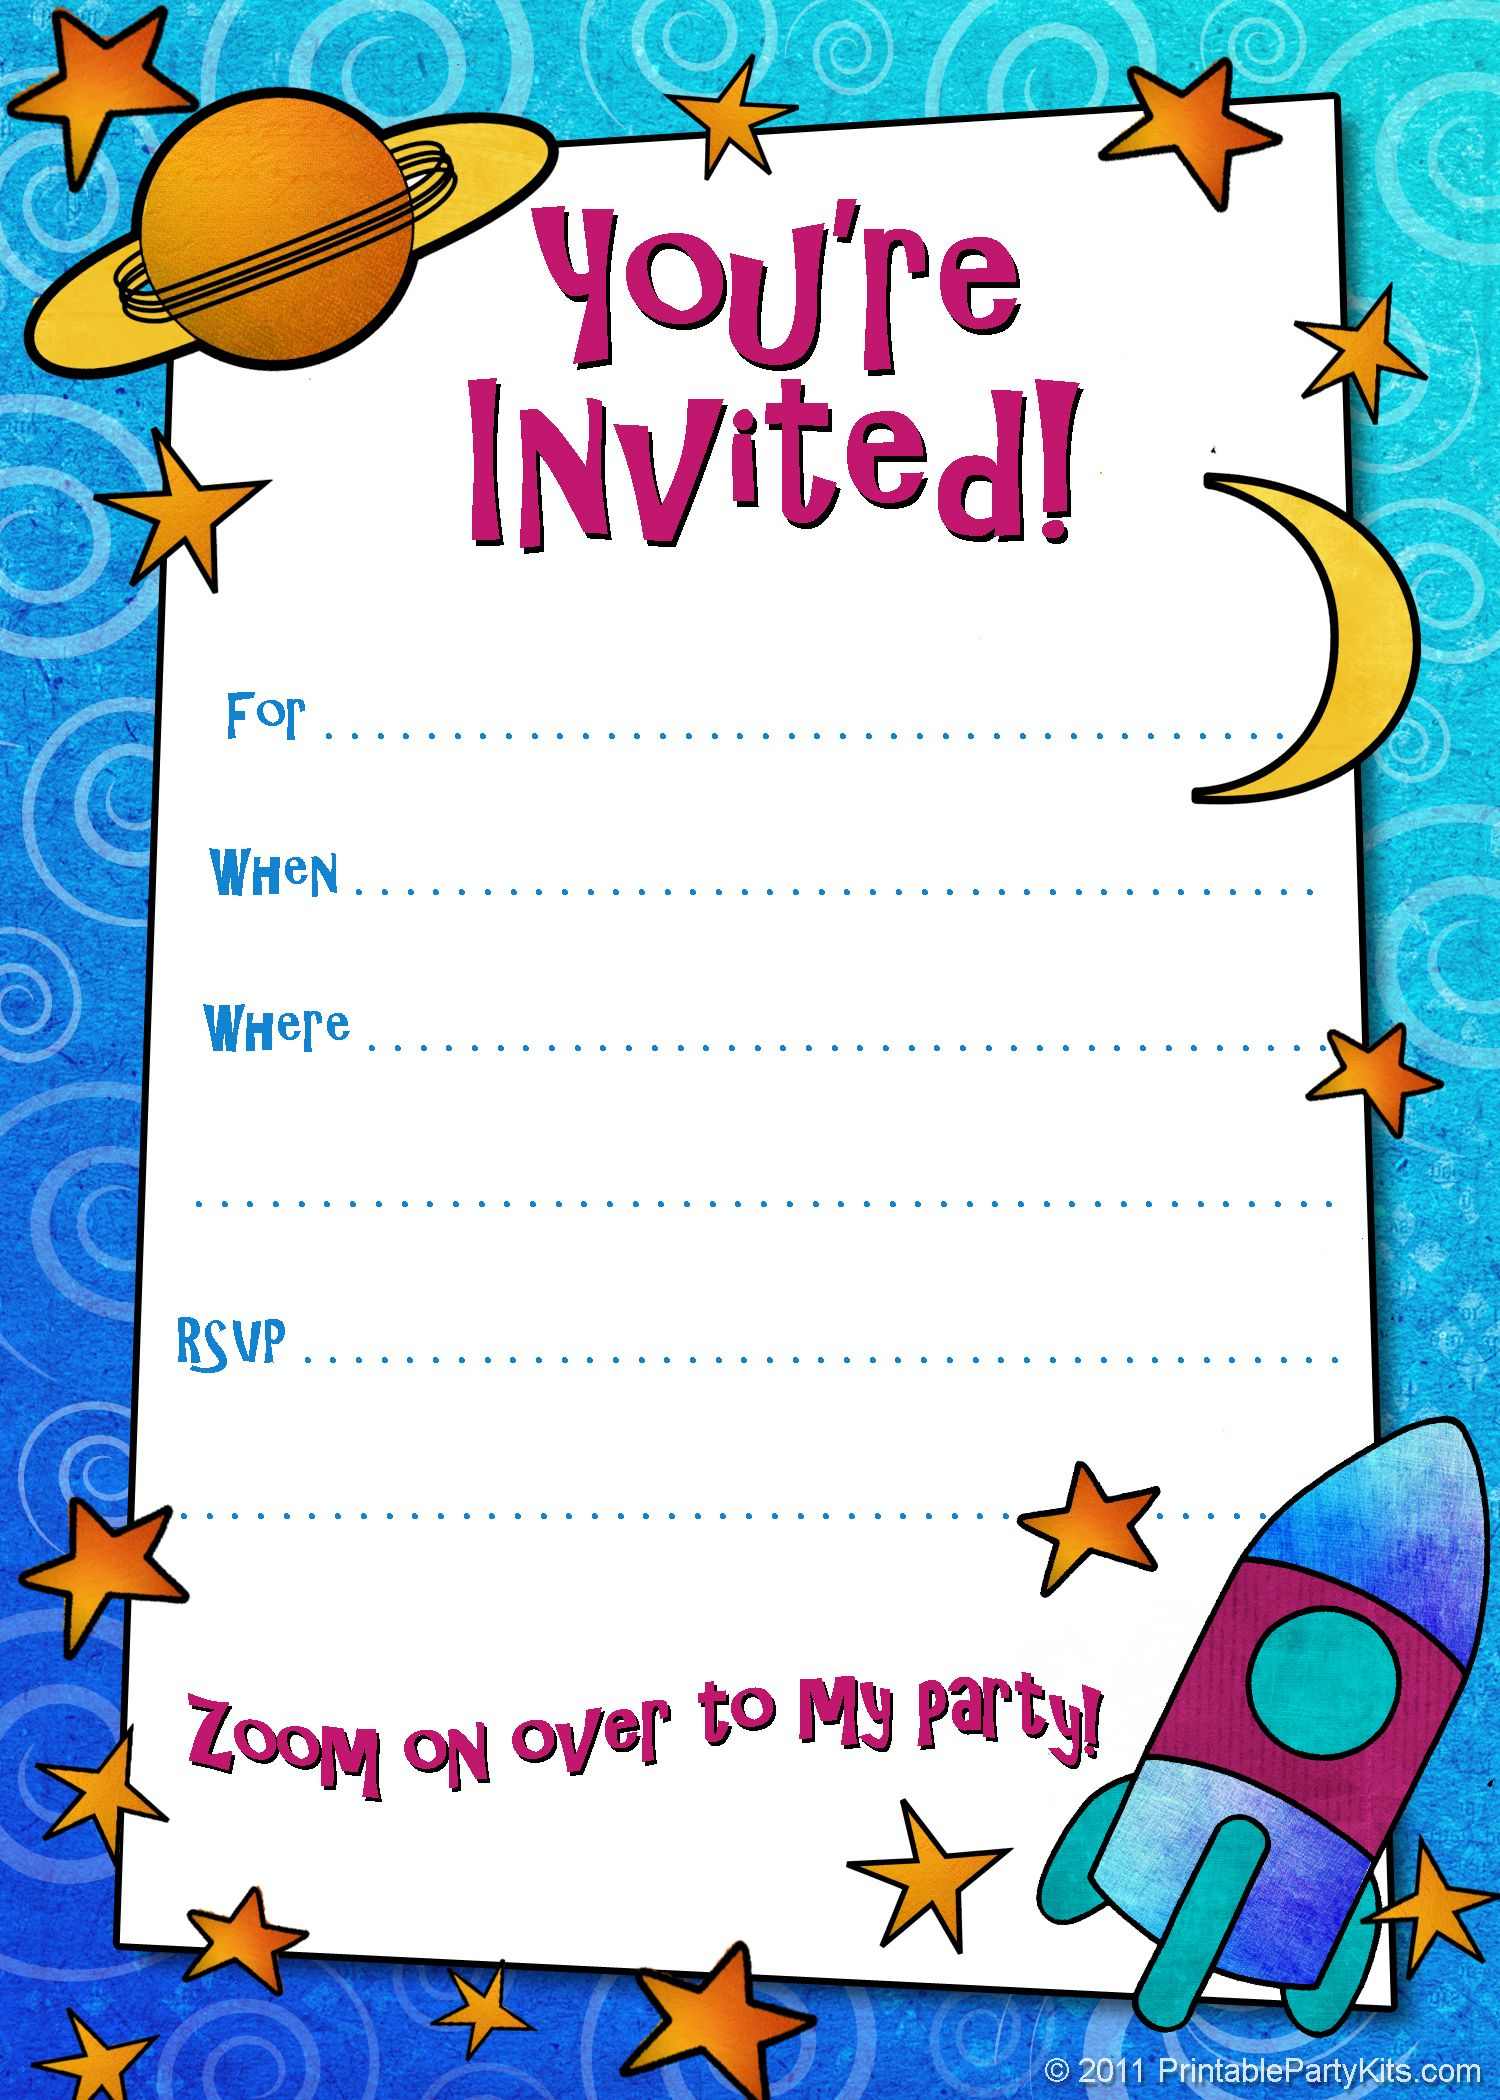 Free Printable Boys Birthday Party Invitations | Birthday Party - Make Your Own Birthday Party Invitations Free Printable